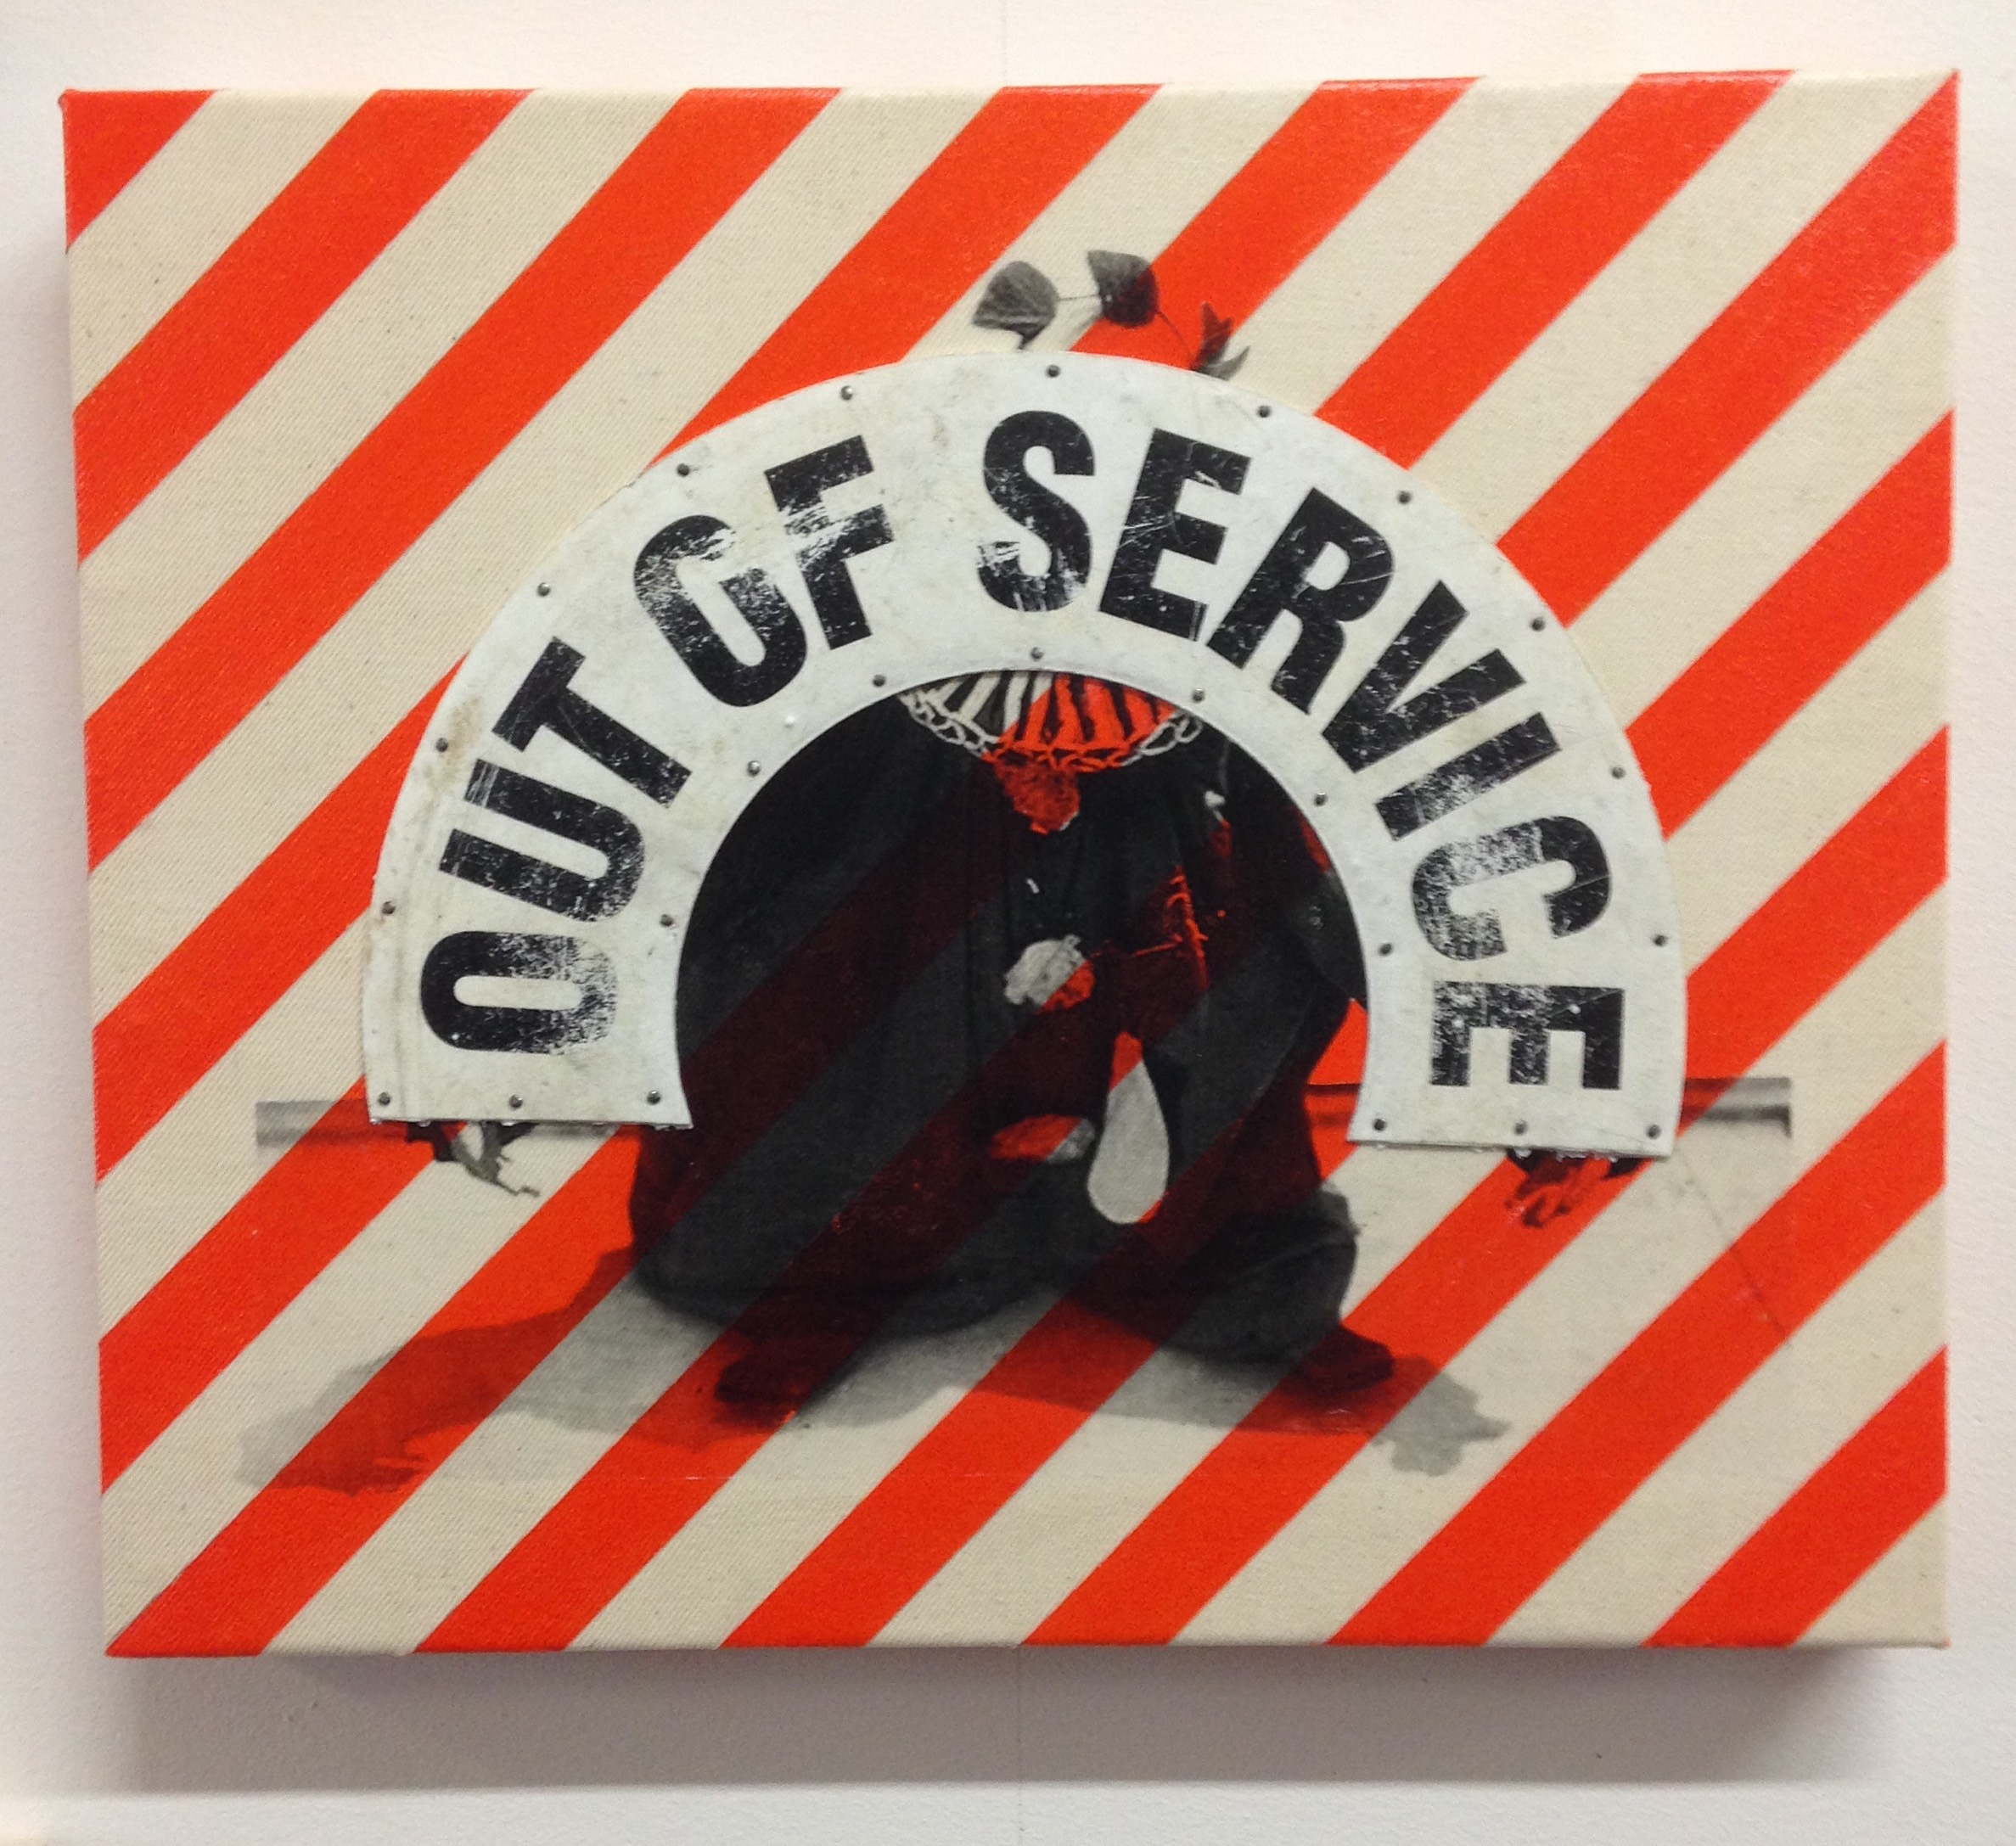 OUT OF SERVICE , 2015, Mixed media on panel, 13 x 15 1/2 inches.